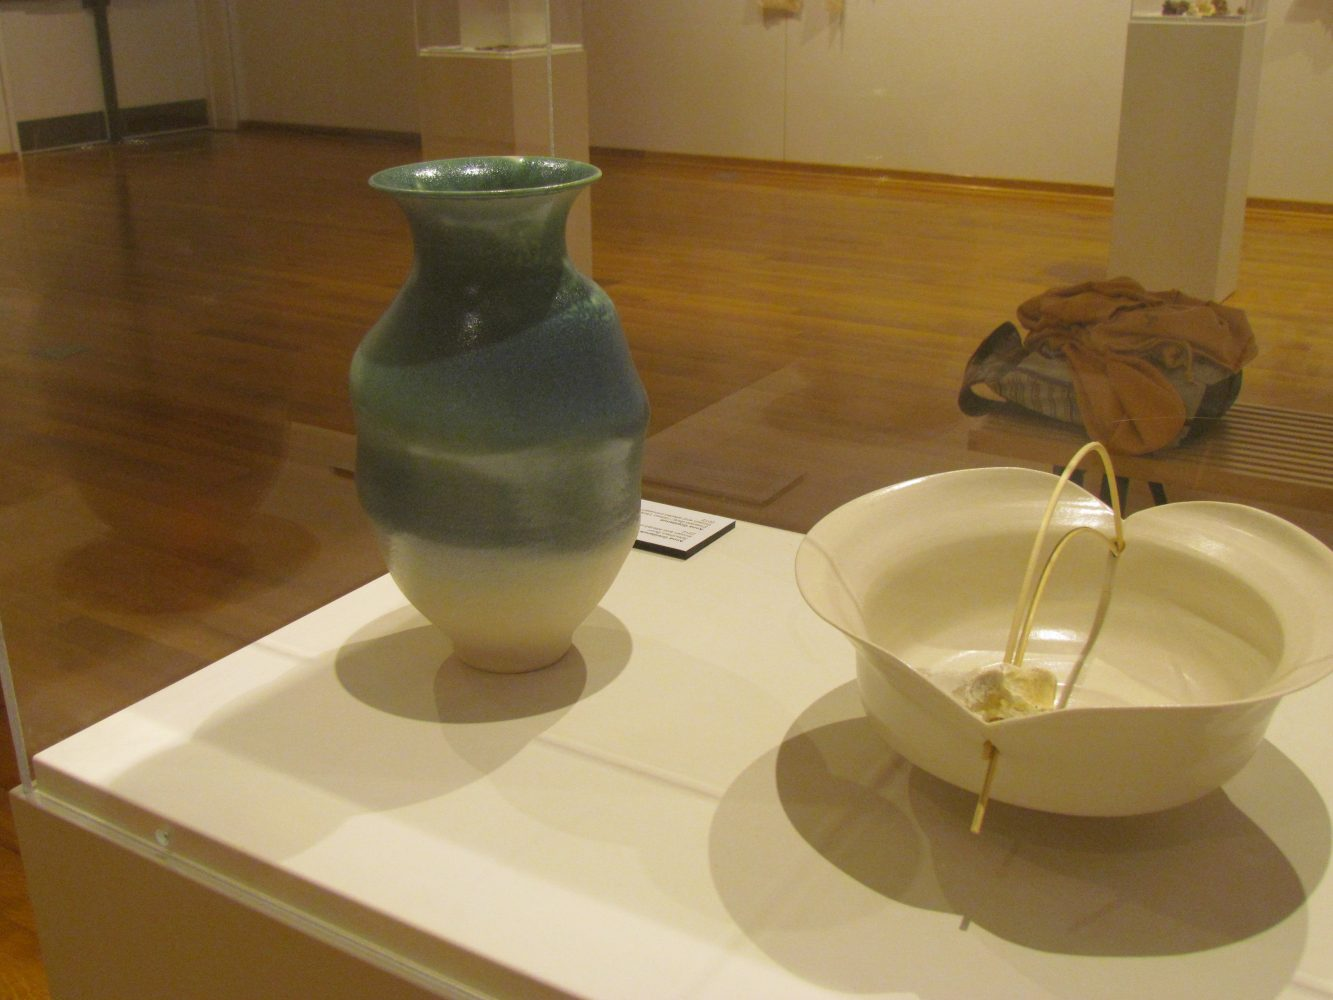 Center Art Gallery pieces currently on display. Photo by Kellee Dragt